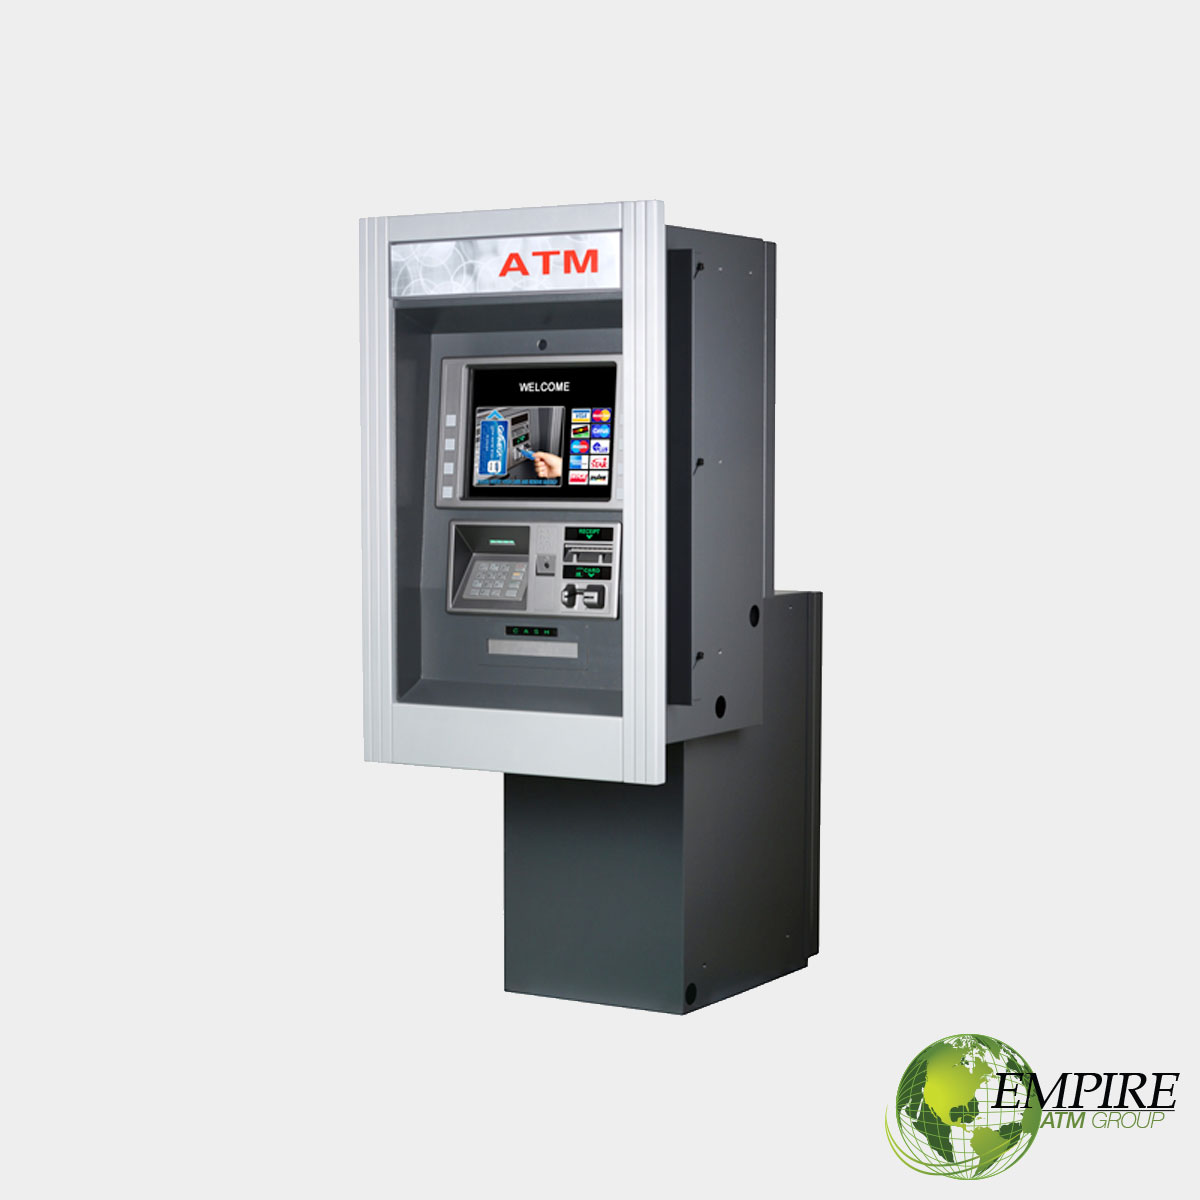 atm business for sale | atmnetwork.co